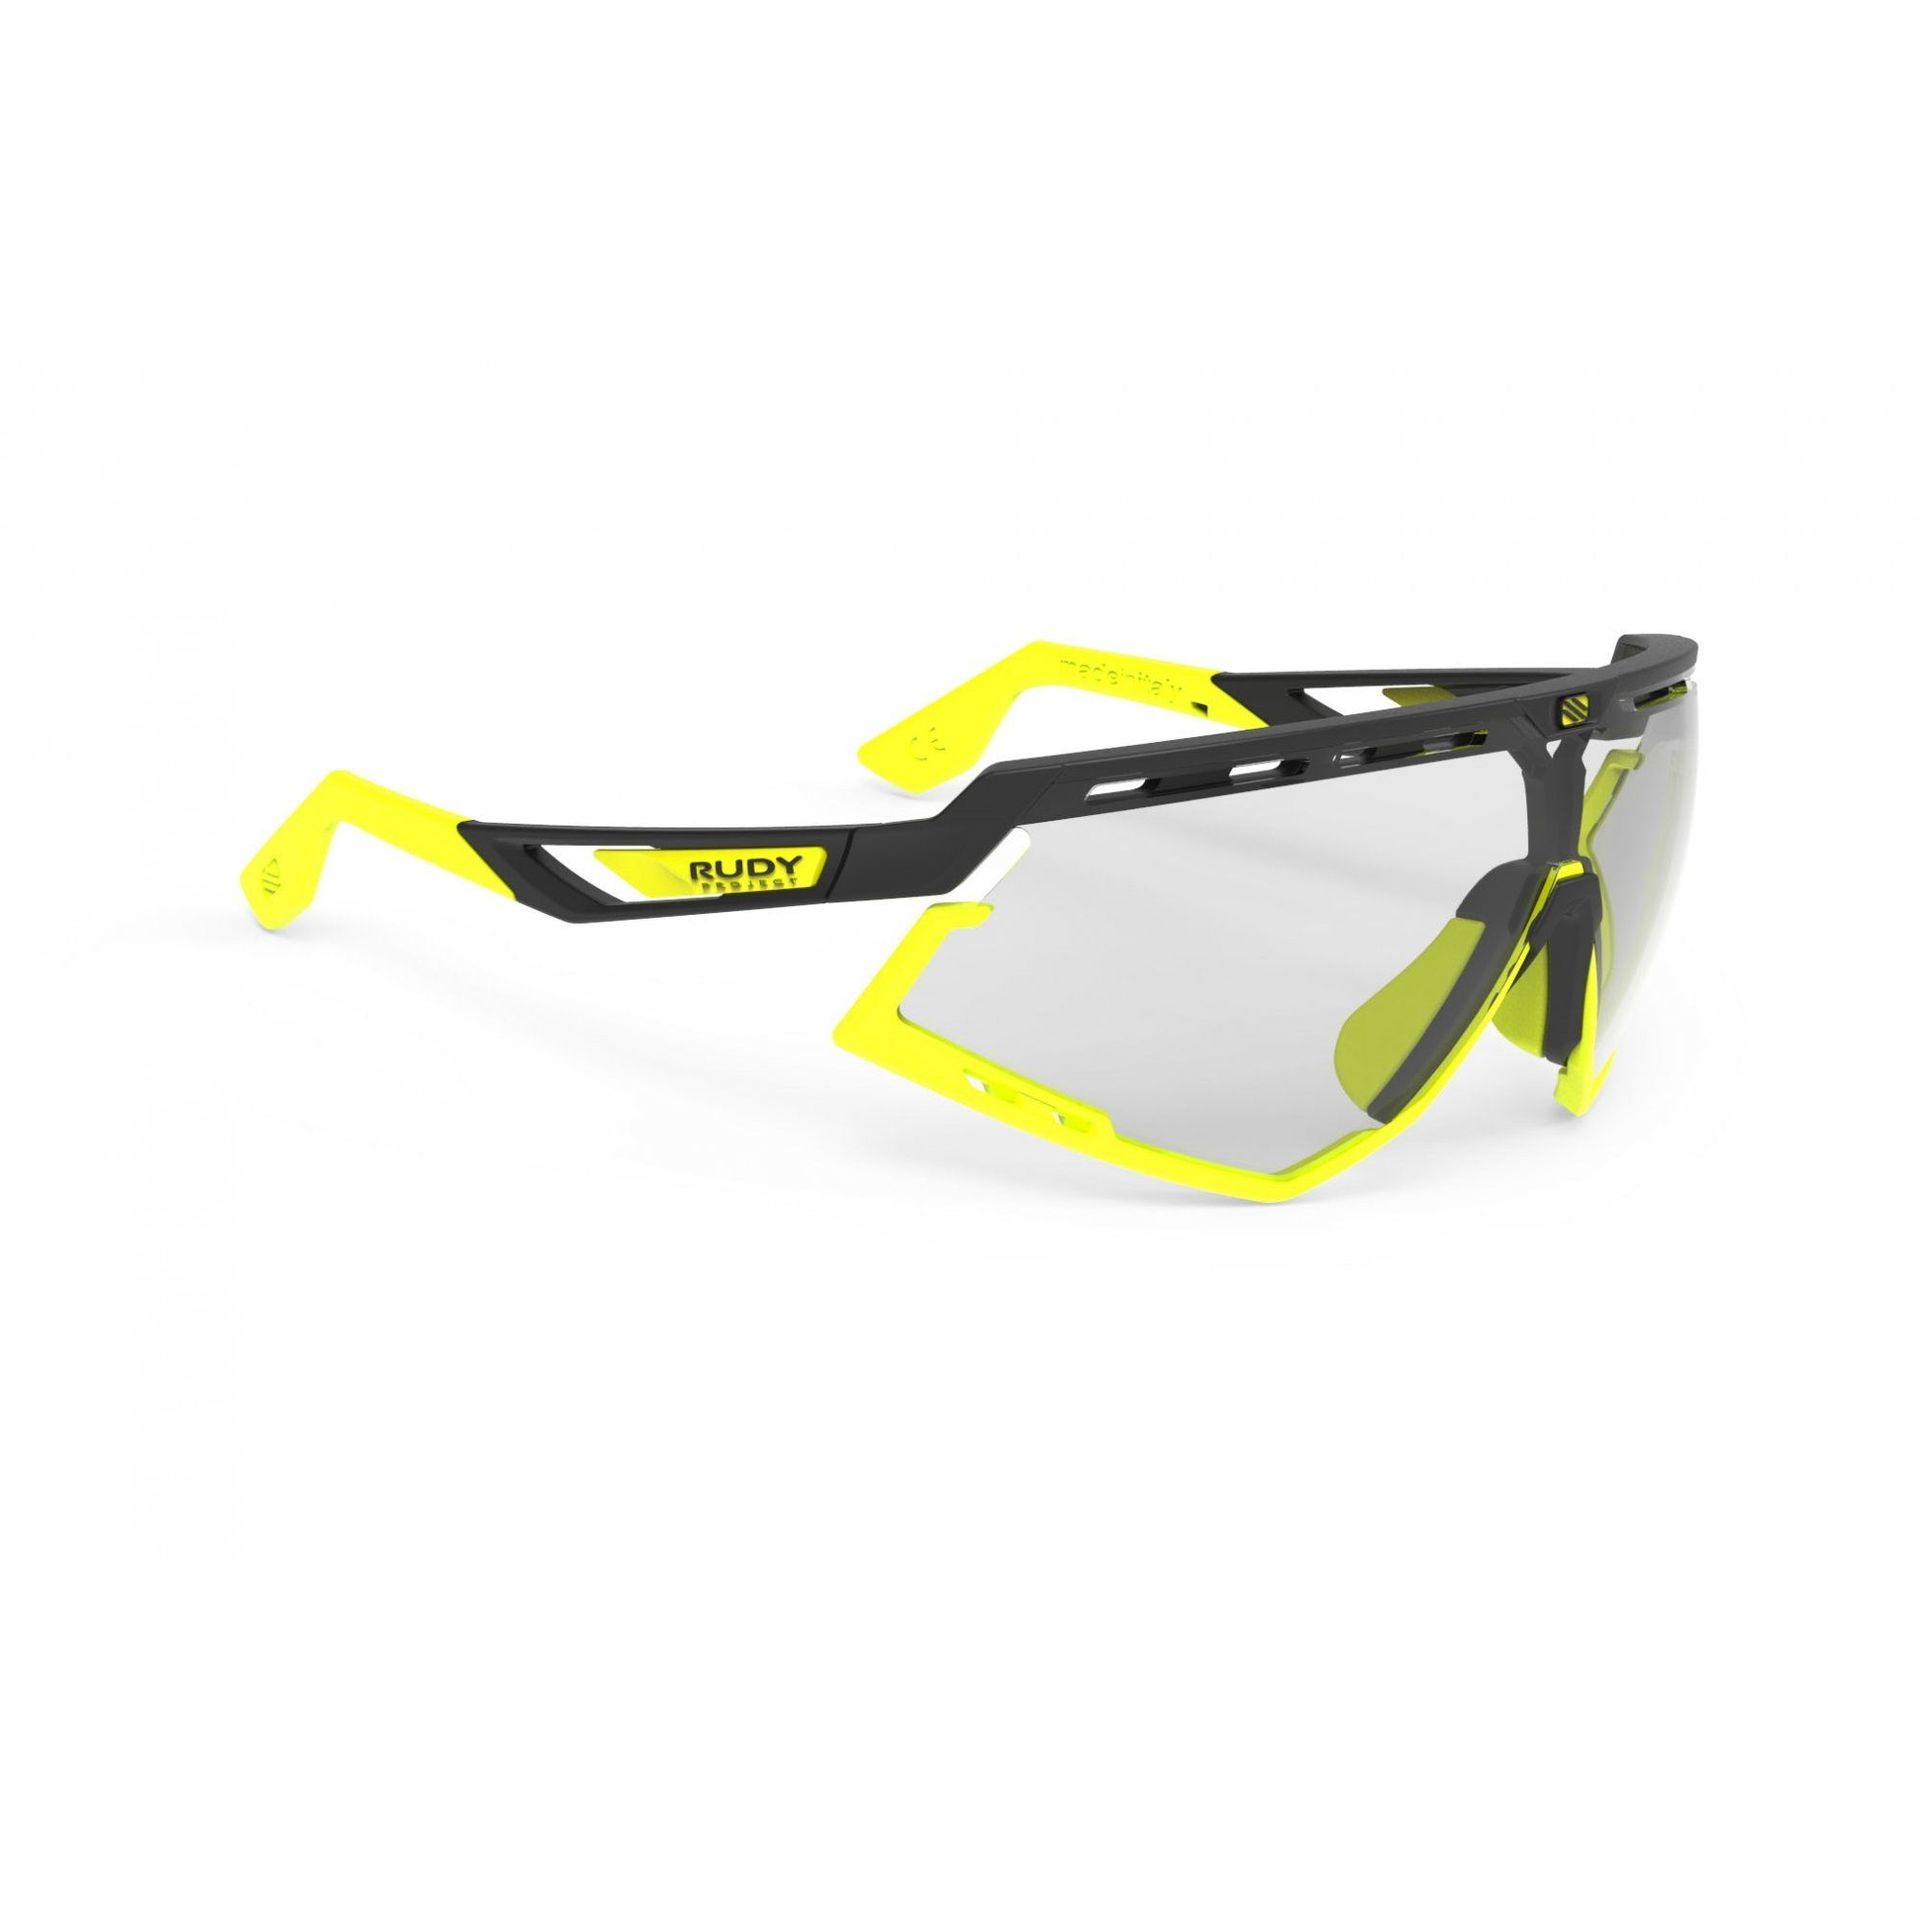 OKULARY RUDY PROJECT DEFENDER BLACK|YELLOW FLUO + IMPACTX PHOTOCHROMIC 2LASERBLACK SP527806 1